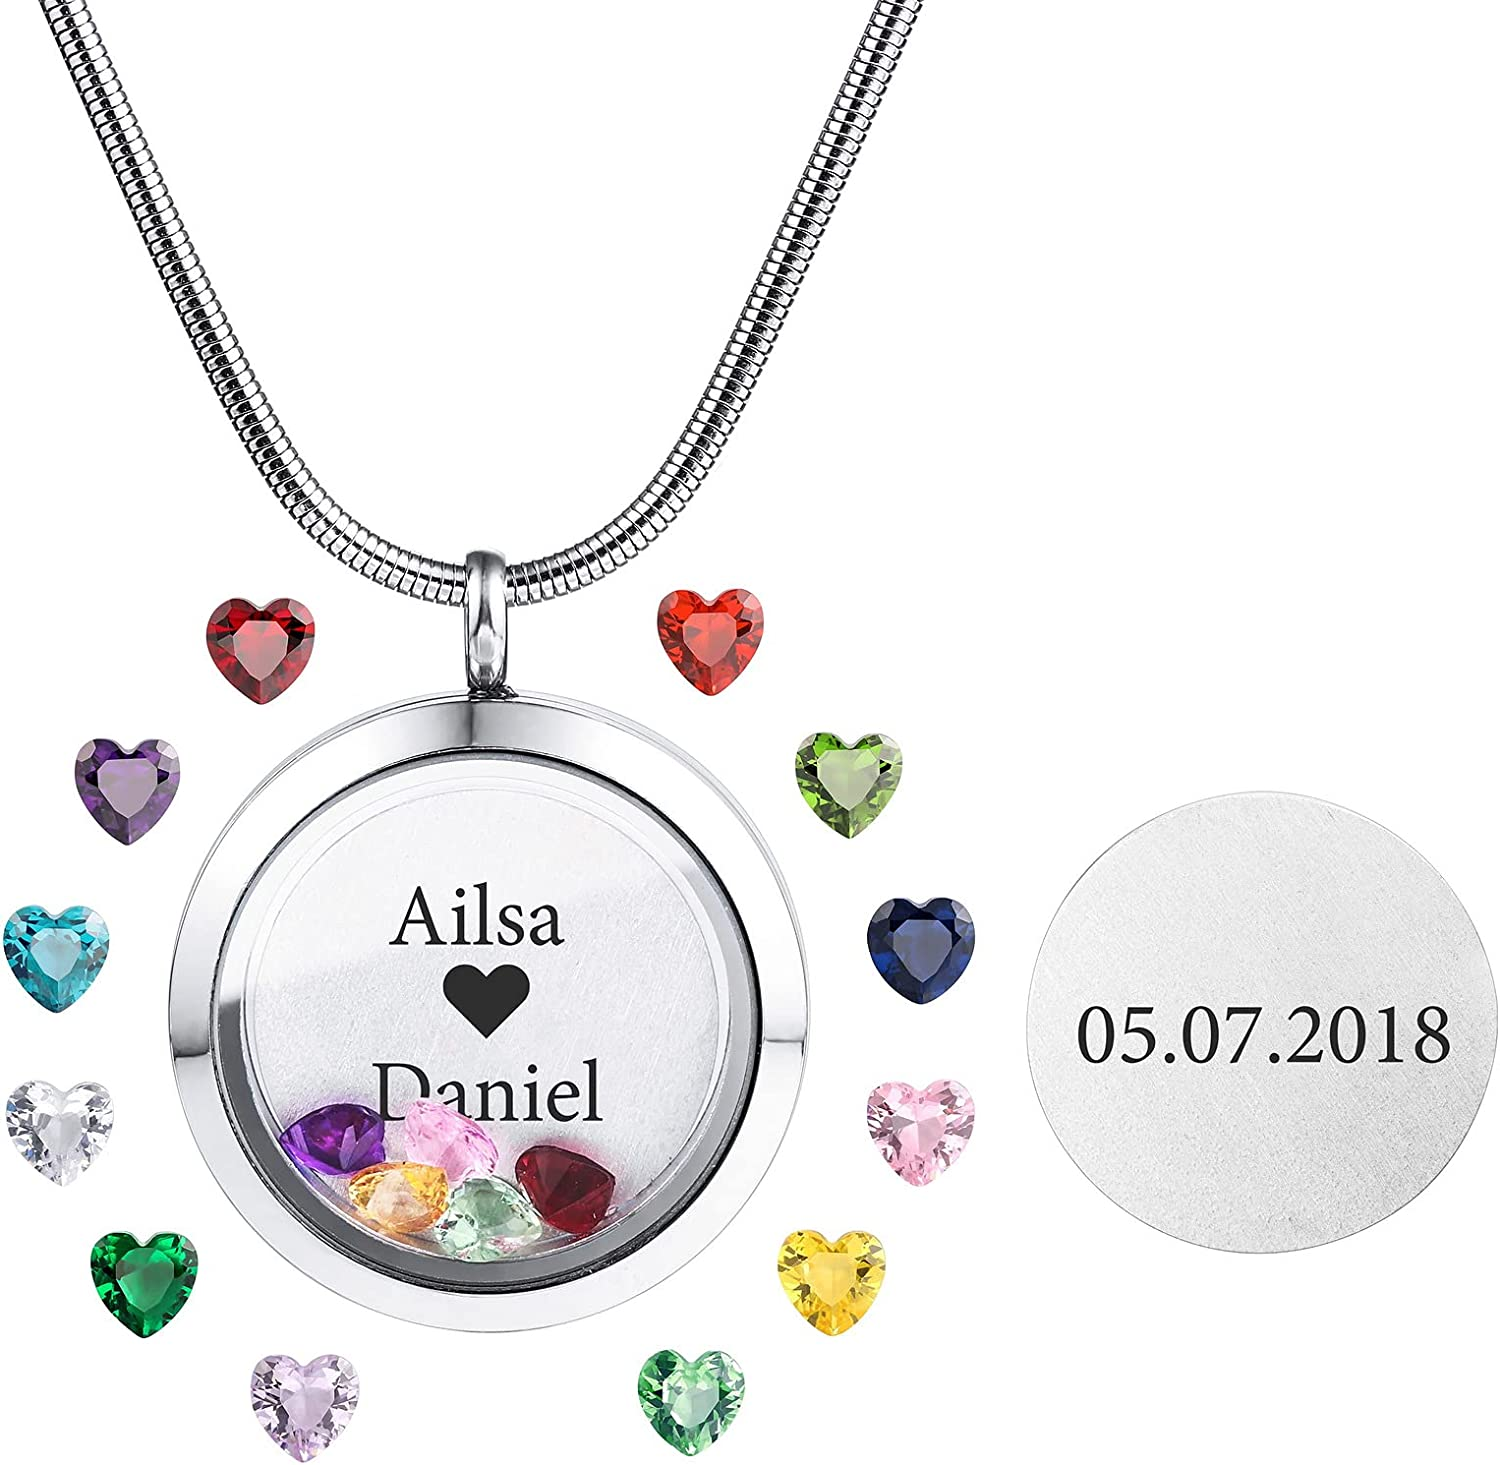 INBLUE It is very popular Personalized Floating Locket Pendant Necklace Engraving P Super beauty product restock quality top